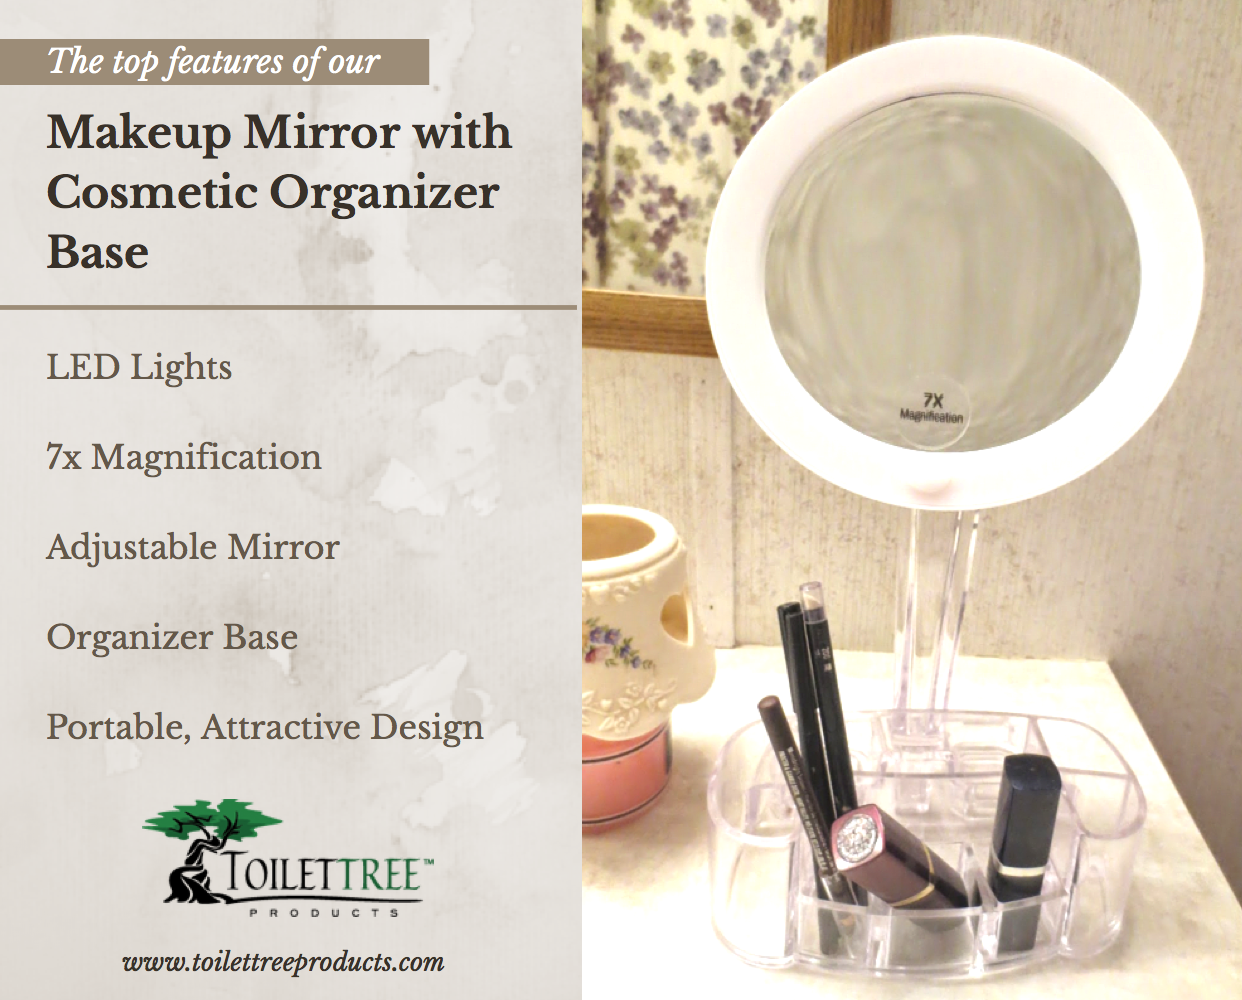 best vanity mirror with lights. LED Magnified Makeup Mirror With Organizer Base  An affordable mirror that illuminates and magnifies so your makeup is always perfect The best with Cosmetic Led